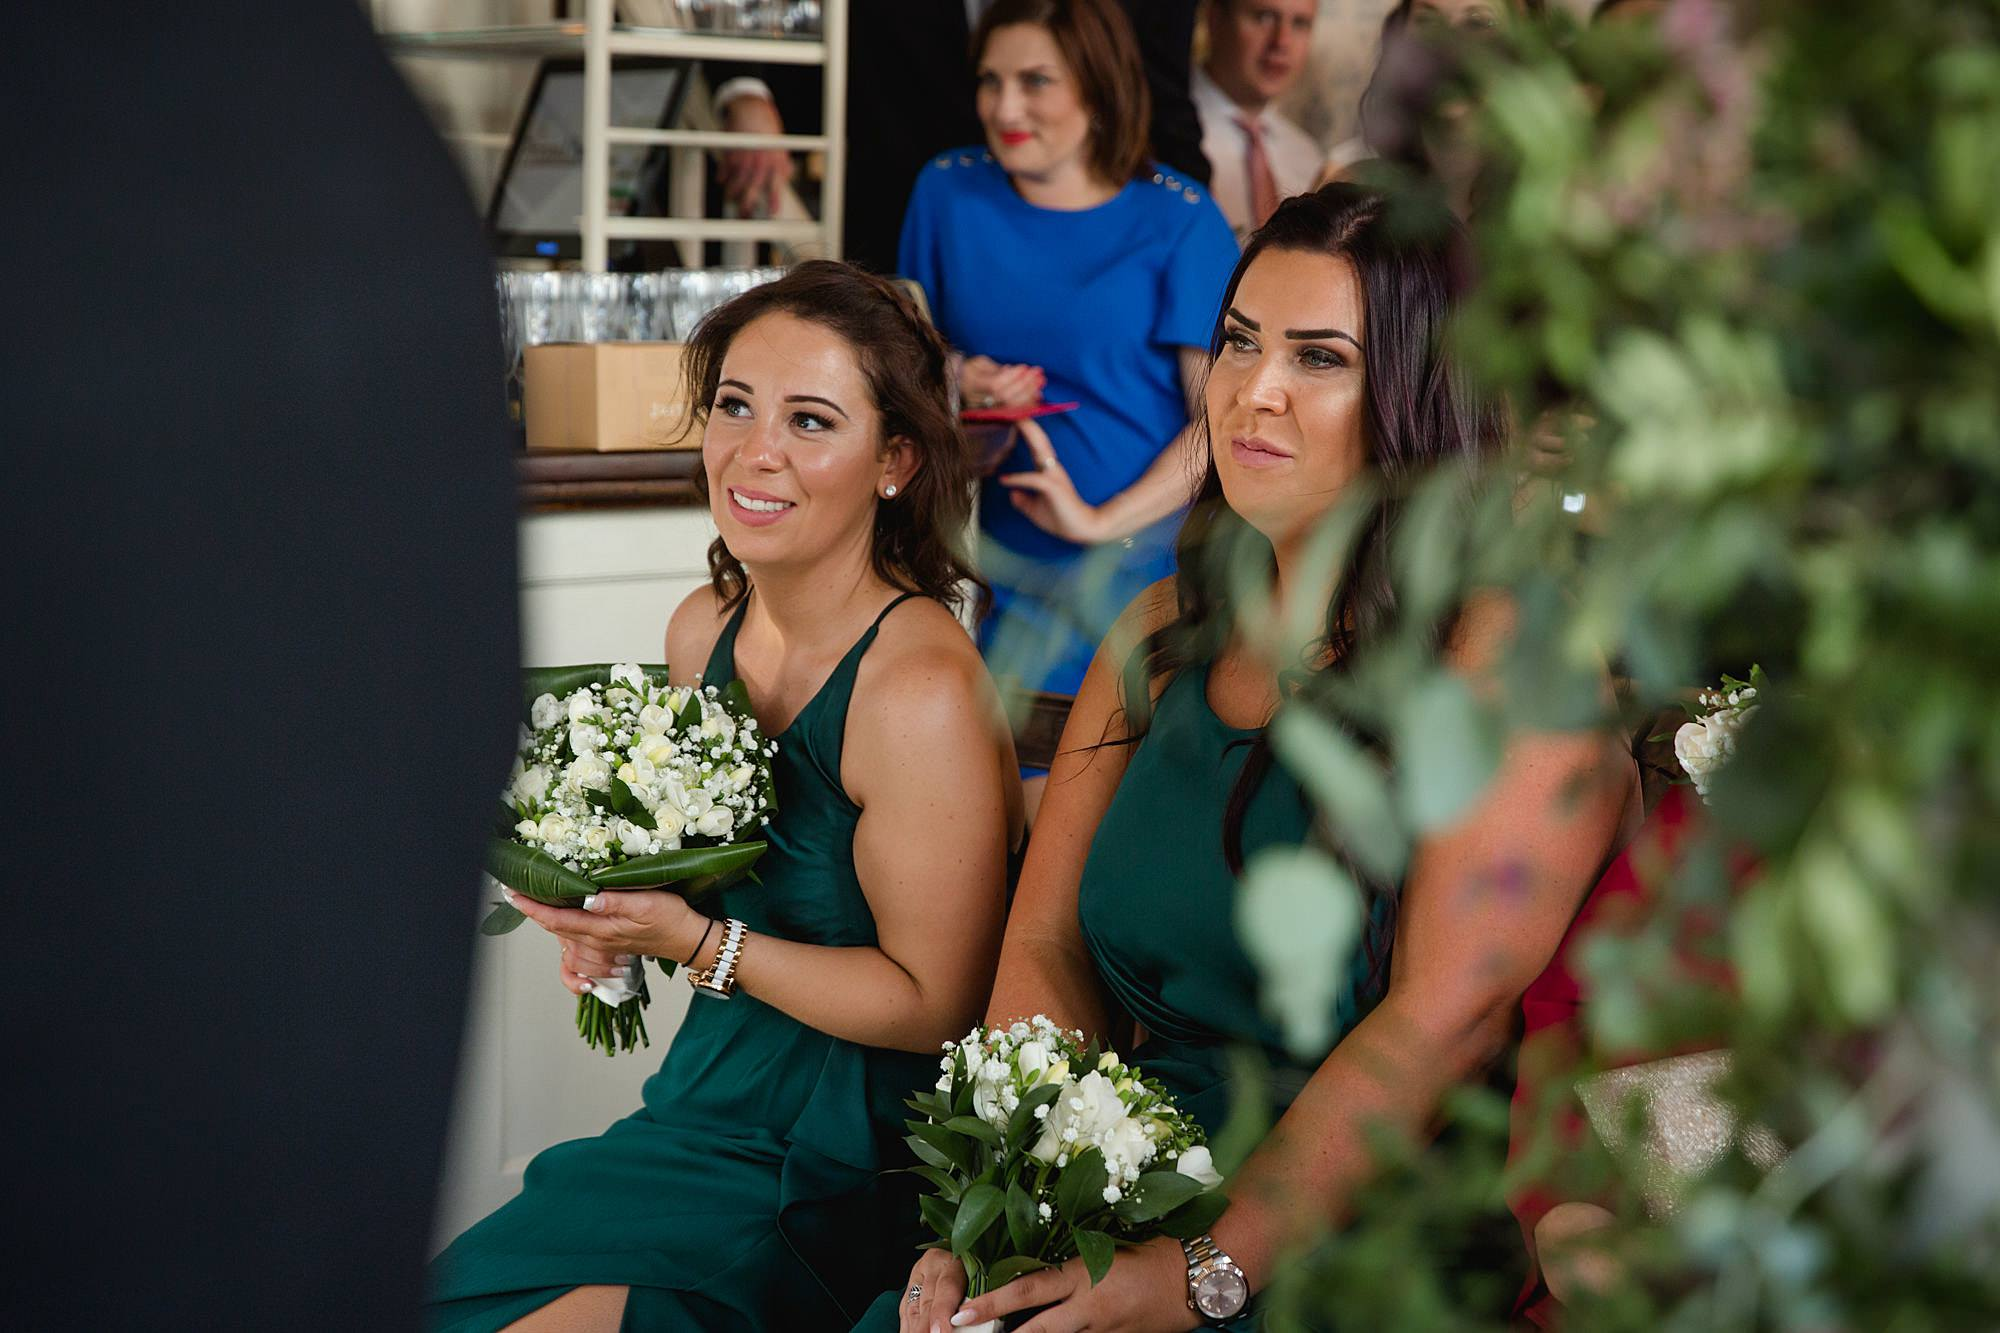 Prince albert camden wedding bridesmaids watching ceremony